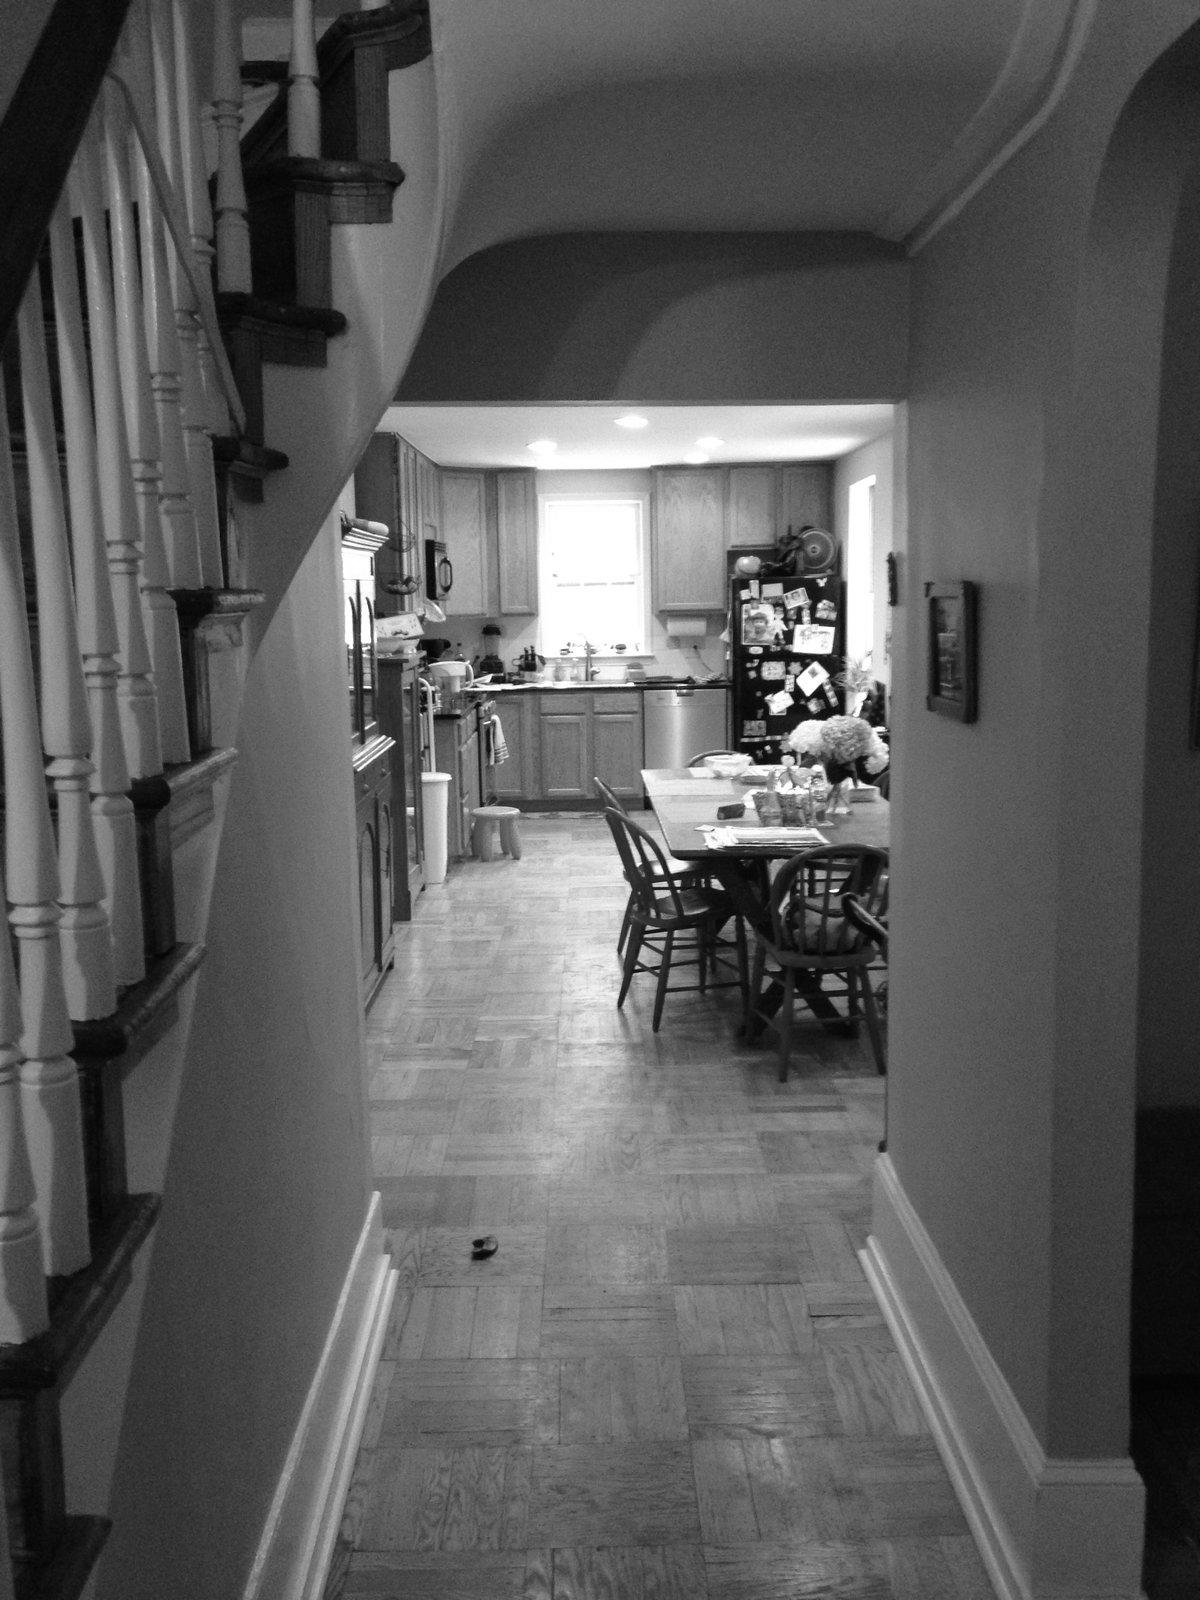 Philadelphia Row House Renovation - Photo 6 of 8 - Reorganizing the original kitchen and dining area was one of the main goals of the renovation.